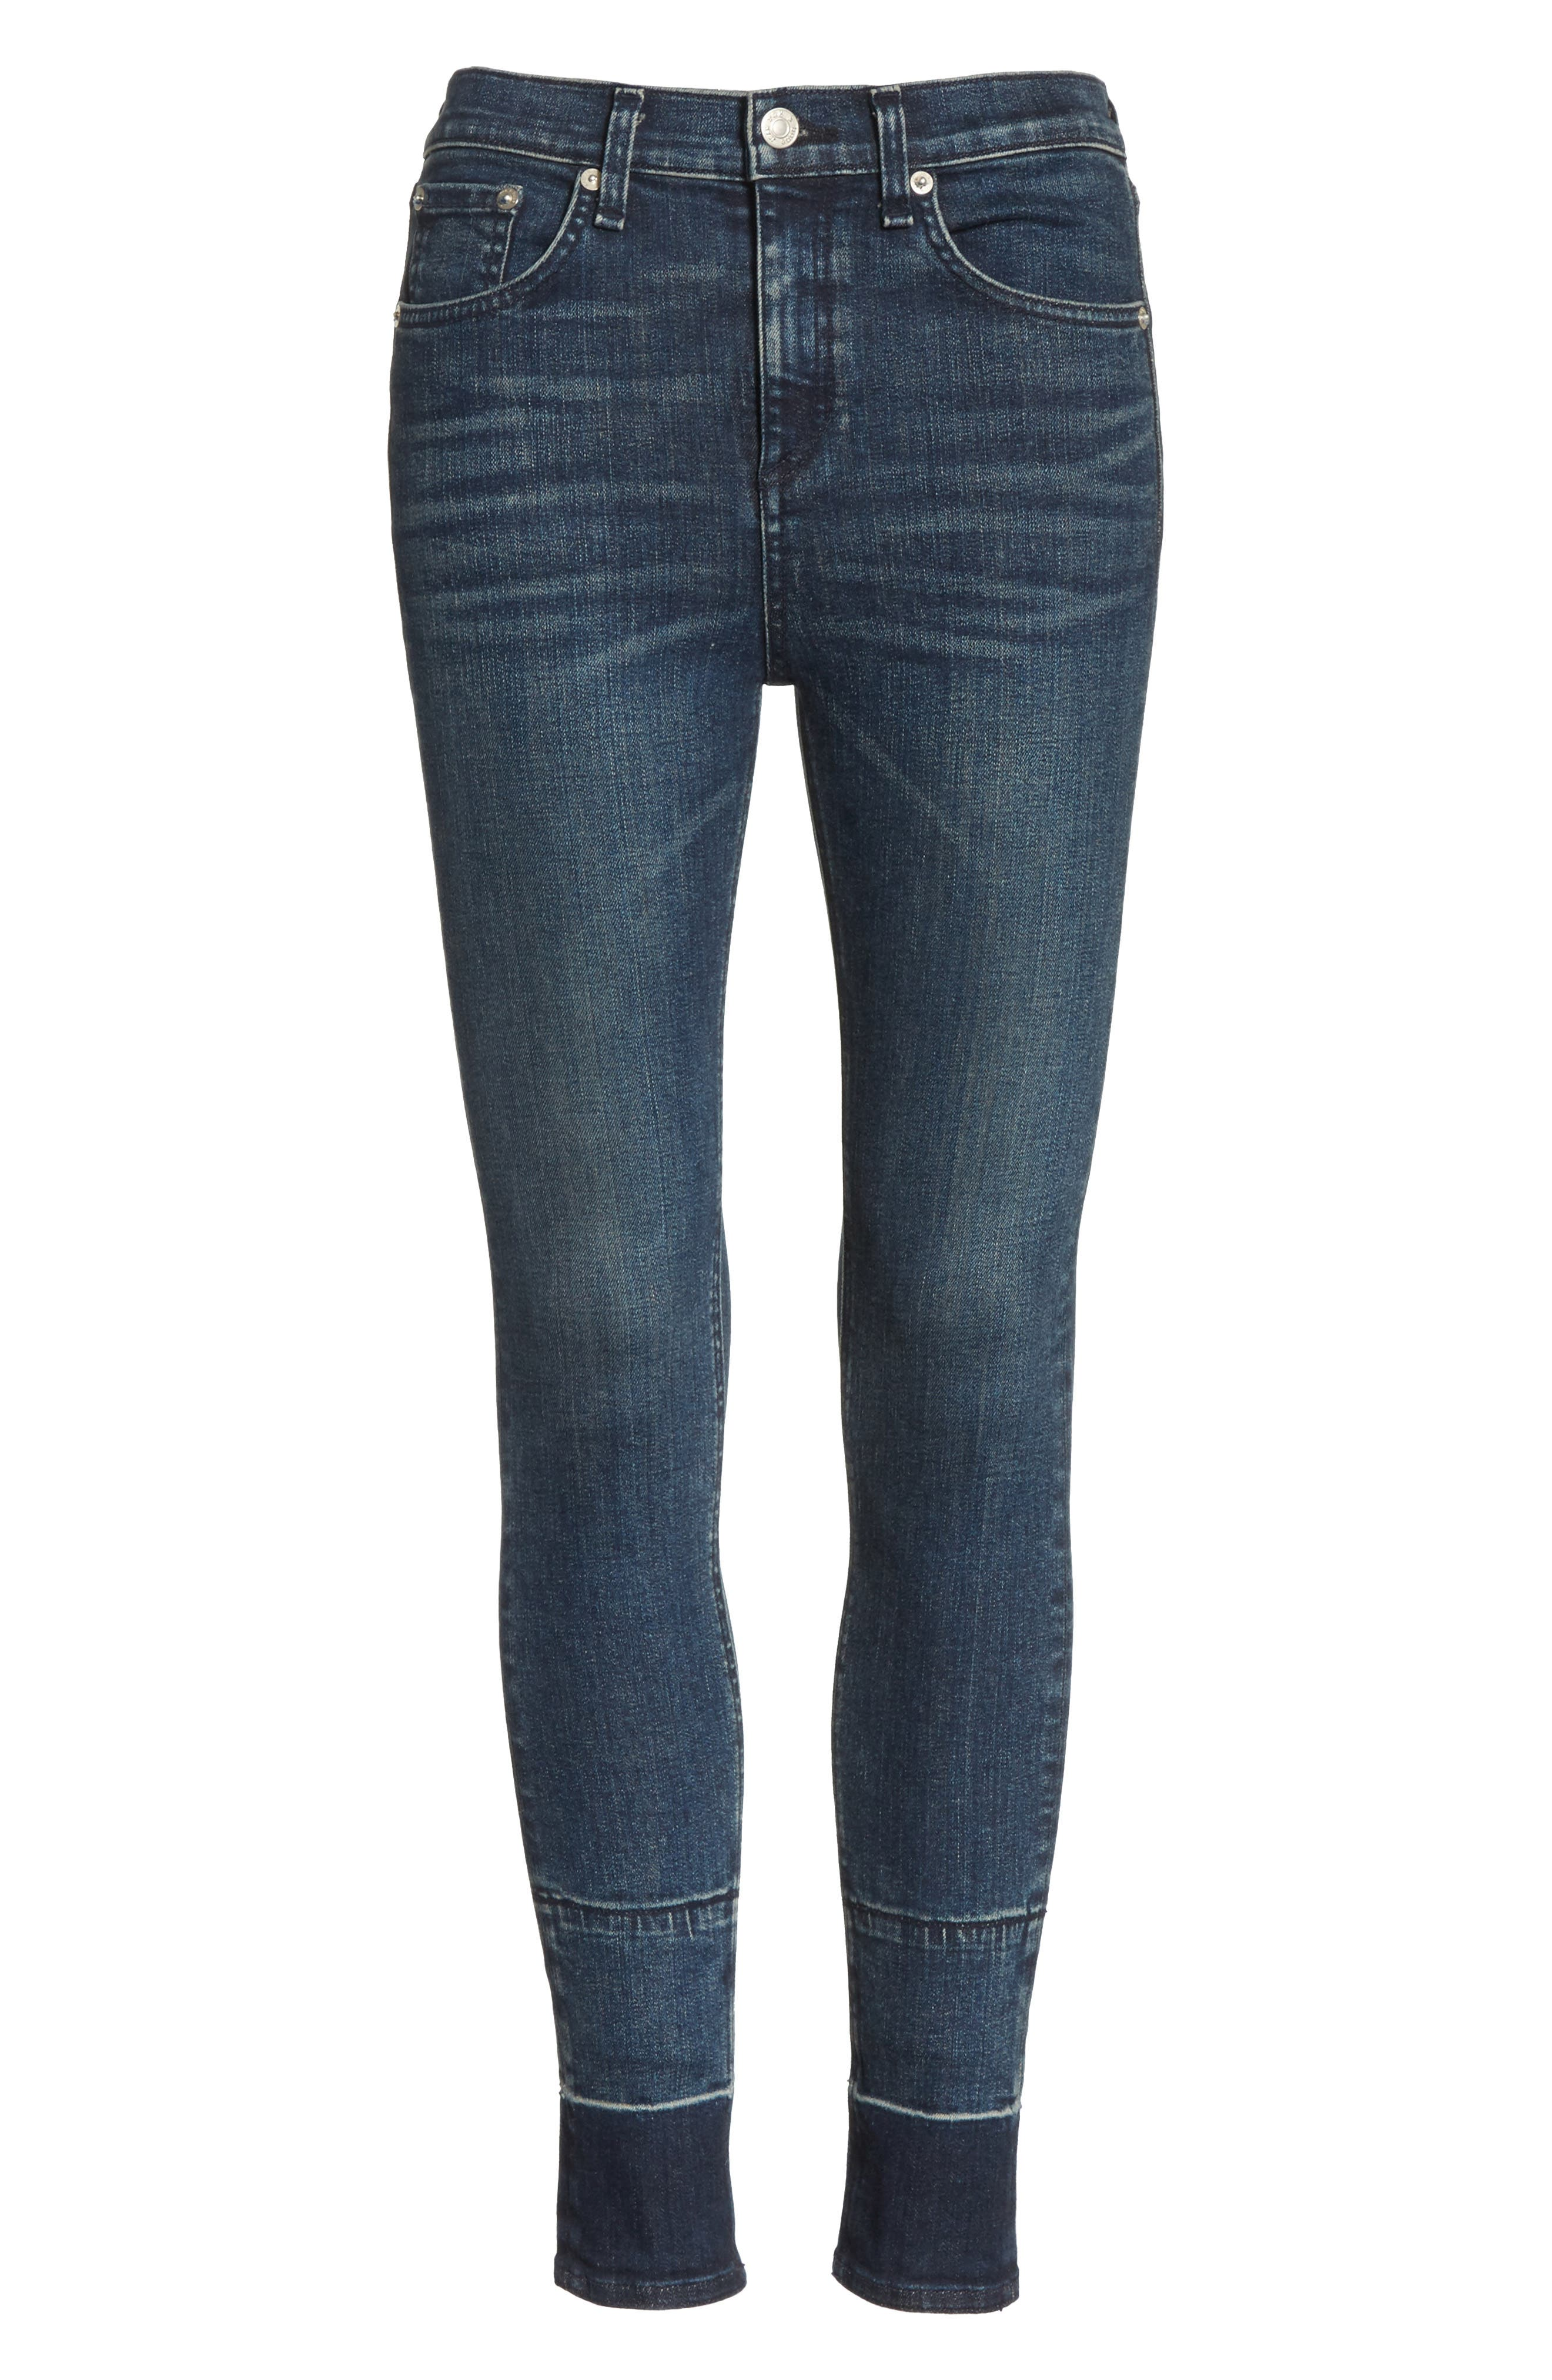 High Waist Ankle Skinny Jeans,                             Alternate thumbnail 7, color,                             401